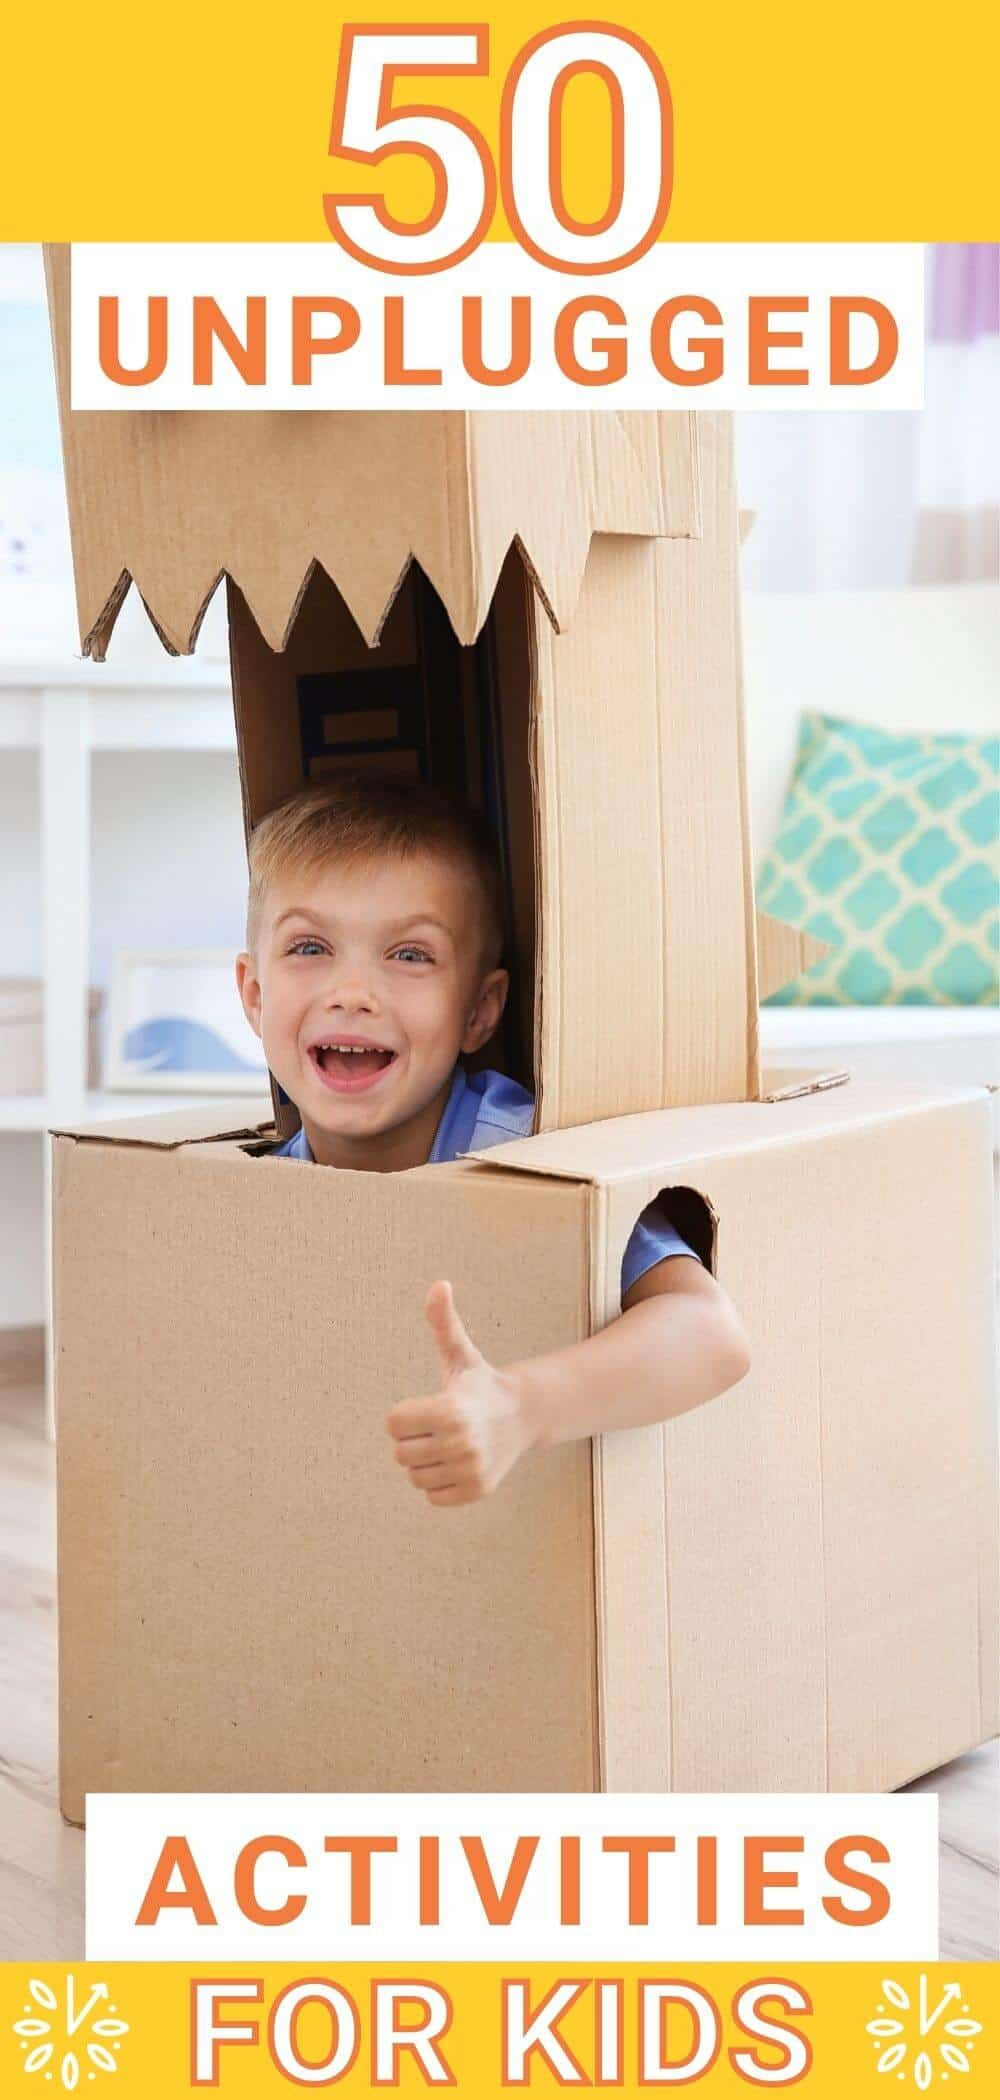 Unplugged Activities for Kids Creative Play